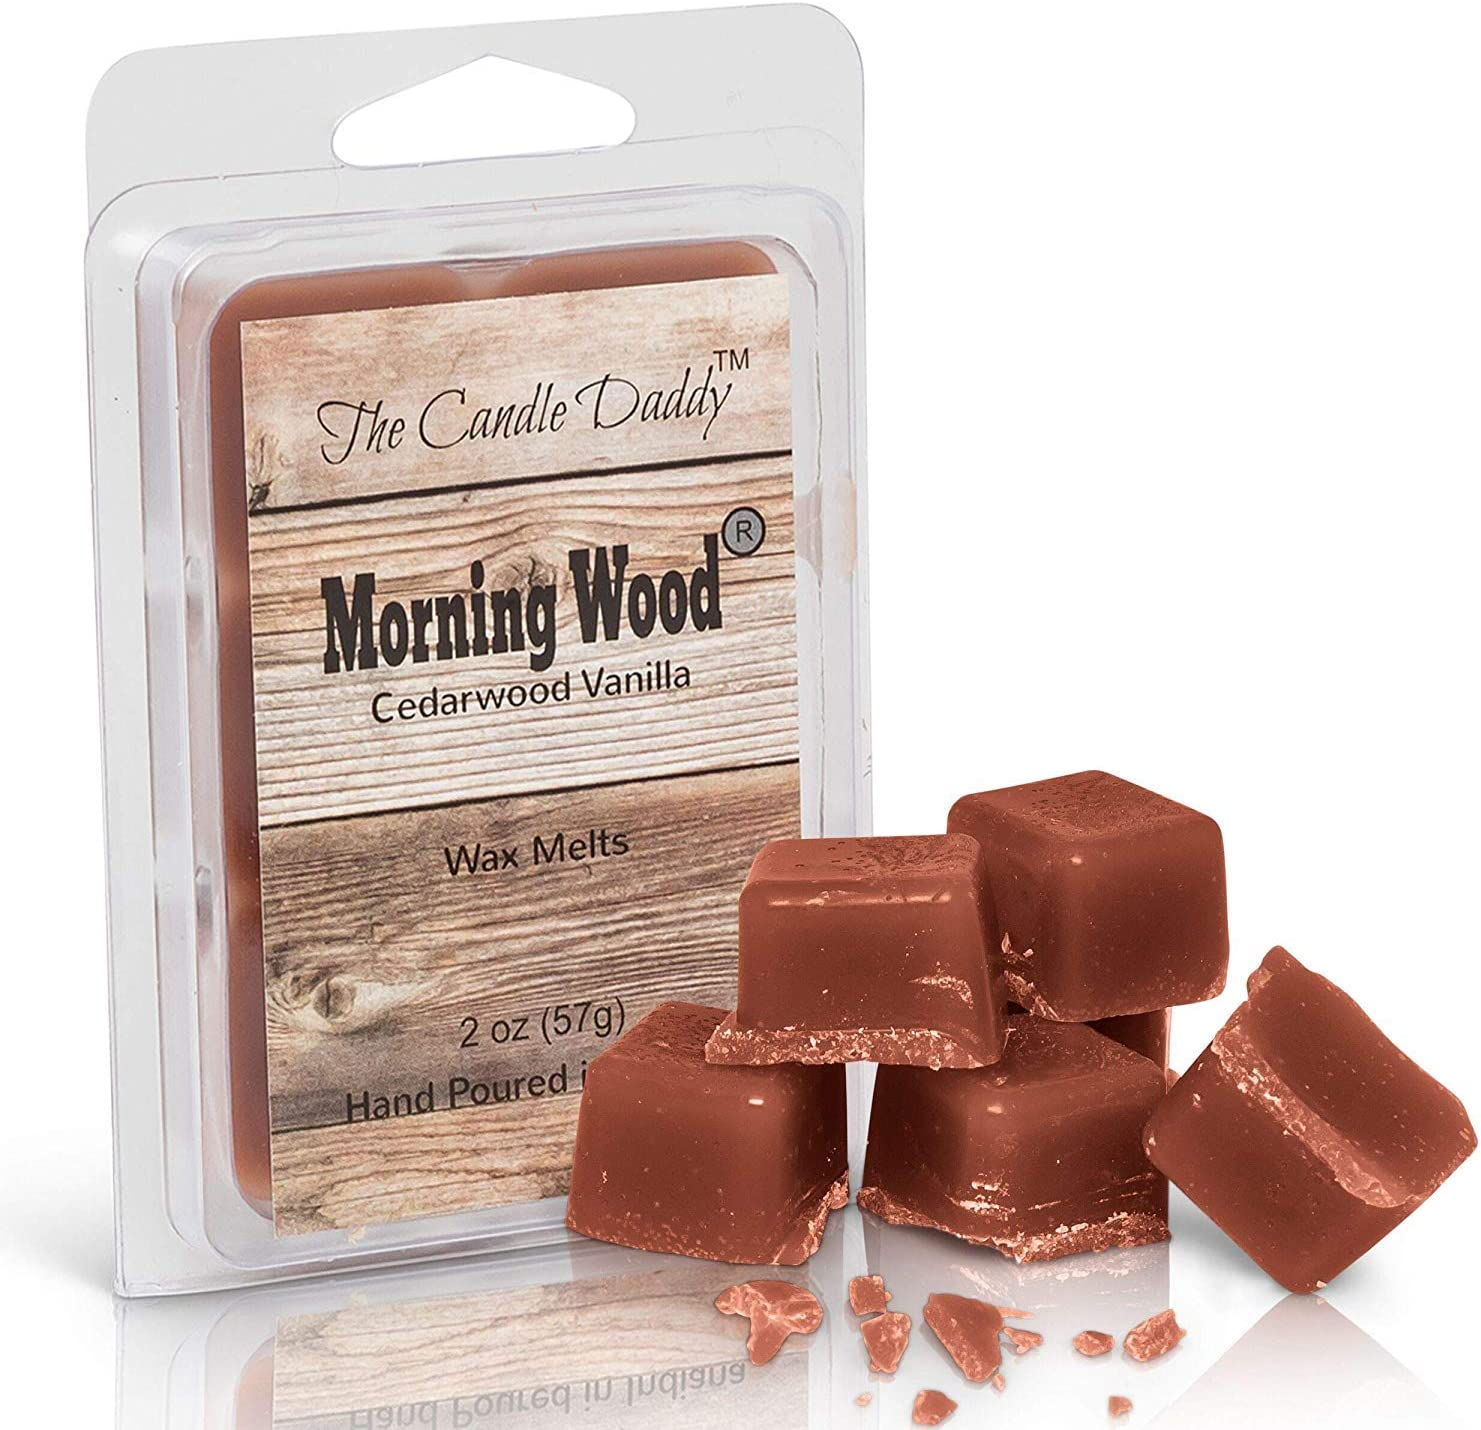 The Candle Daddy -Morning Wood- Cedarwood Vanilla Scented Wax Cubes - Maximum Scent Cedarwood Wax Melts - Candle Scent Melts- Enjoy Candle Ambience Without Flame Soot - 1 Pack - 6 Cubes- 2 oz